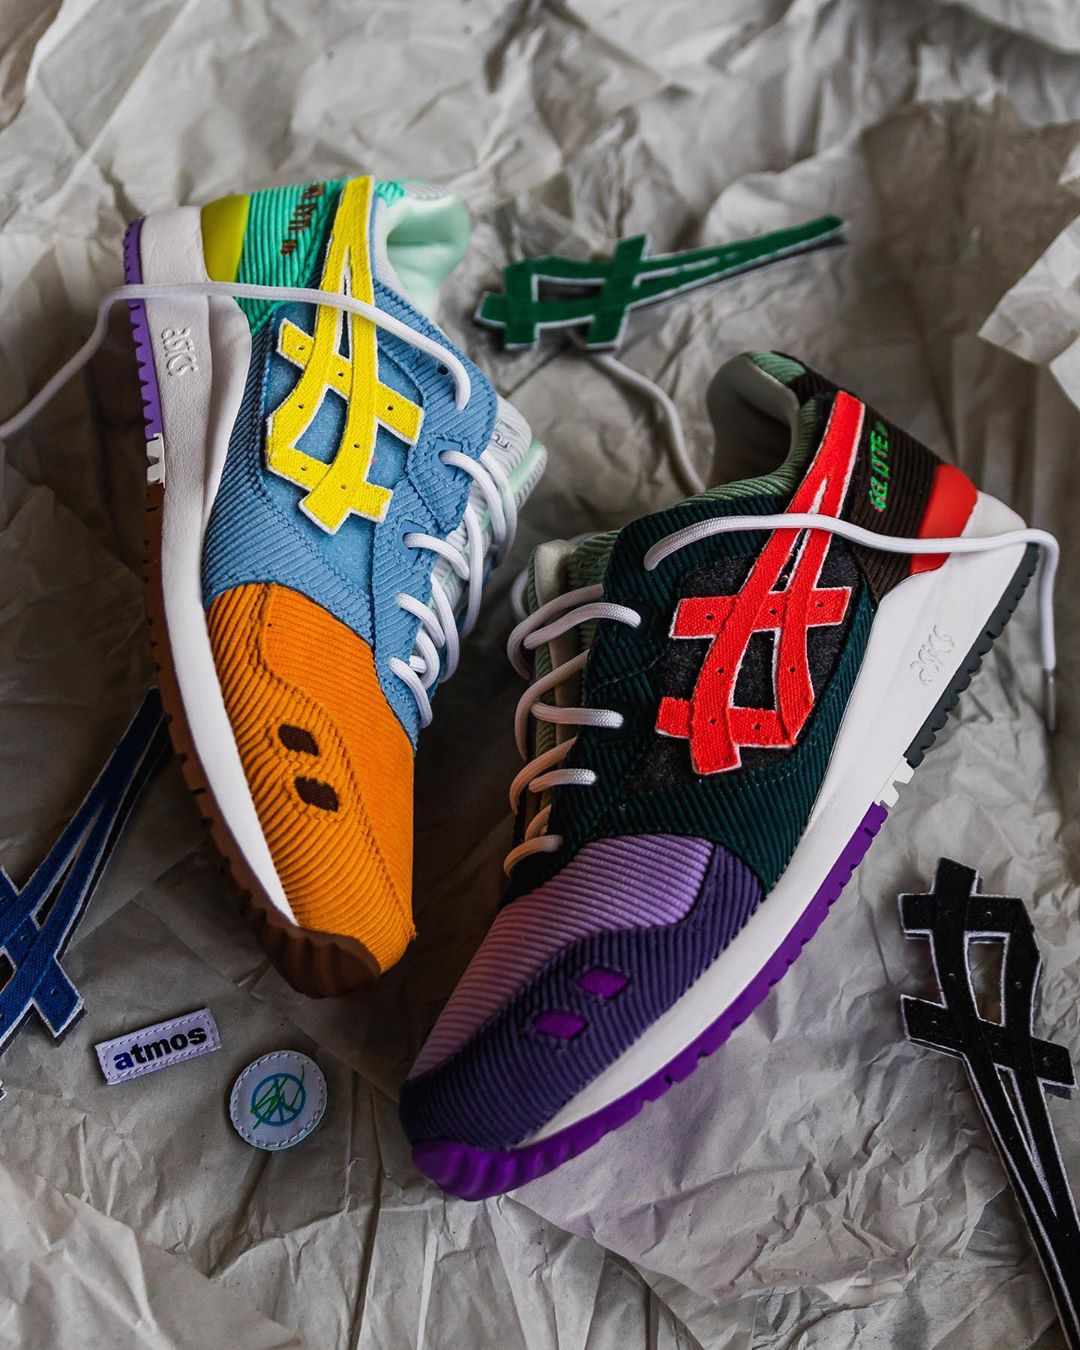 Novelship Sean Wotherspoon x Atmos x Asics Gel-Lyte III Corduroy